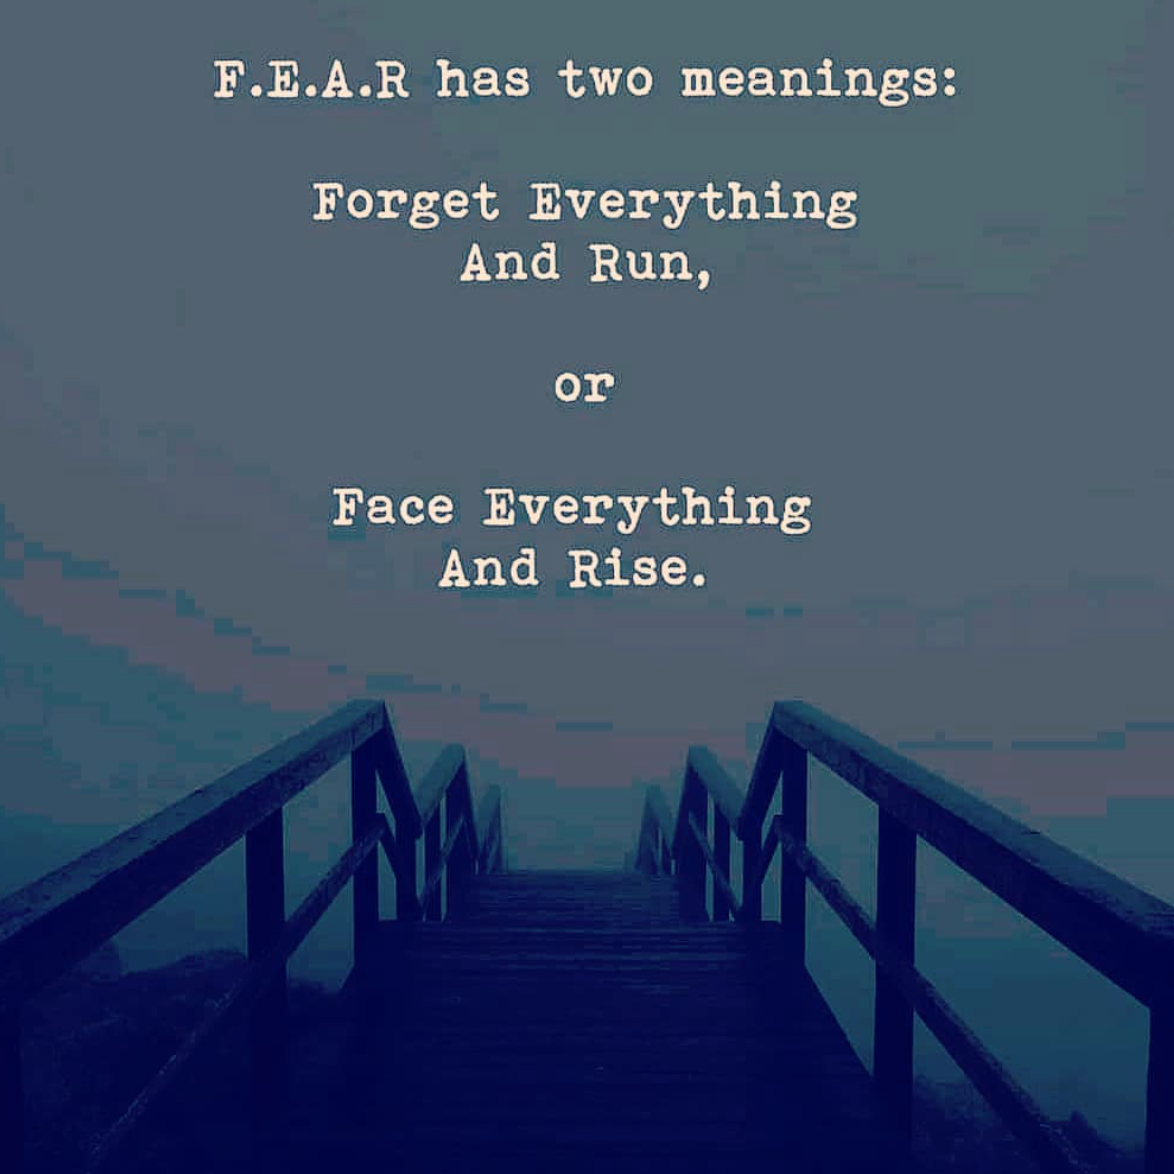 [Image] F.E.A.R. has two meanings. Choose the good one to rise.